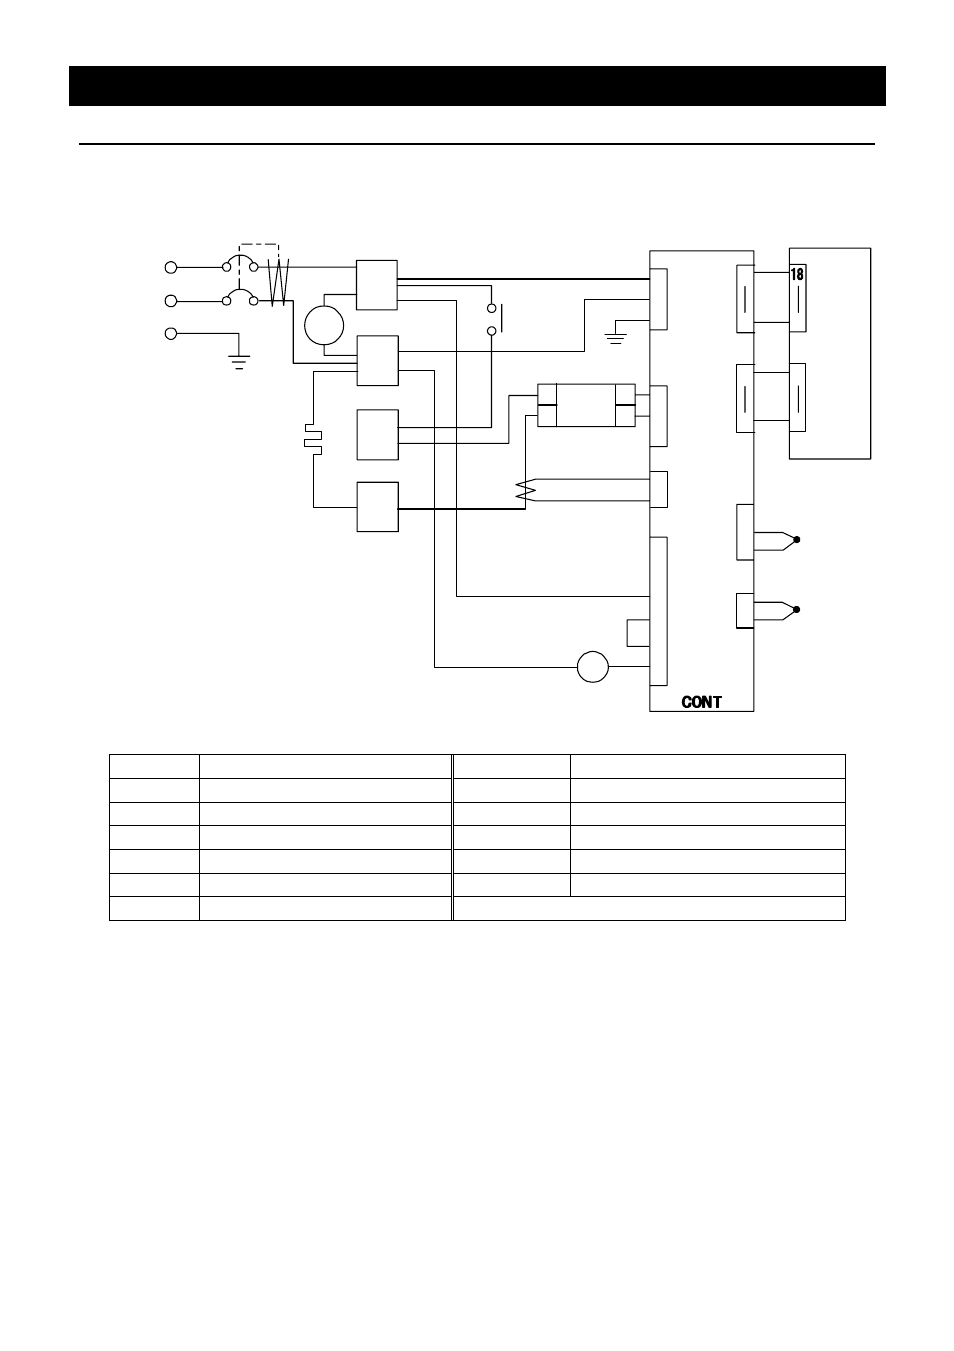 medium resolution of wiring diagram pio elb ac100v hth2 th1 yamato scientific dkn 912 constant temperature drying oven user manual page 44 50